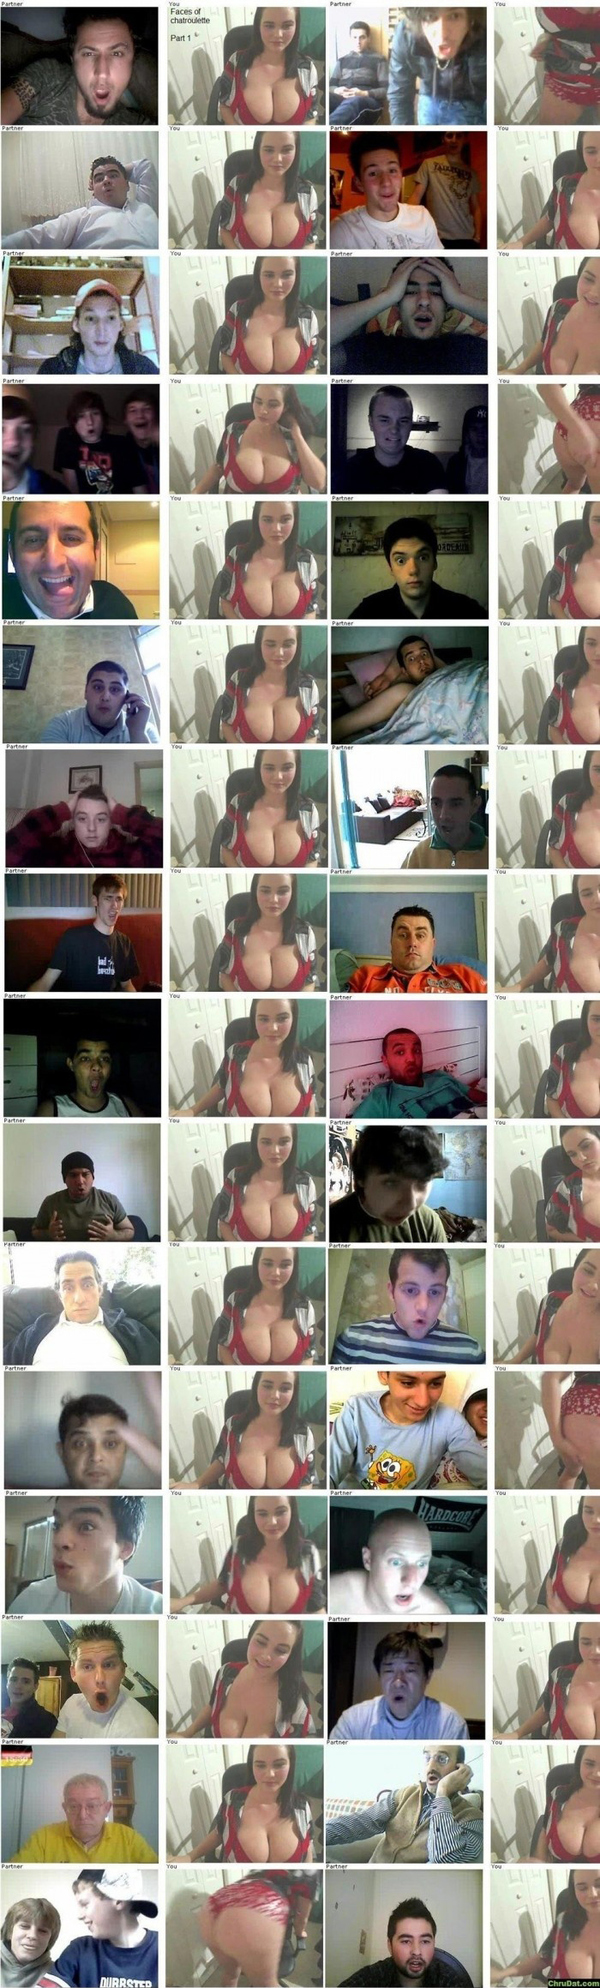 Priceless Reactions To Boobs On Chatroulette